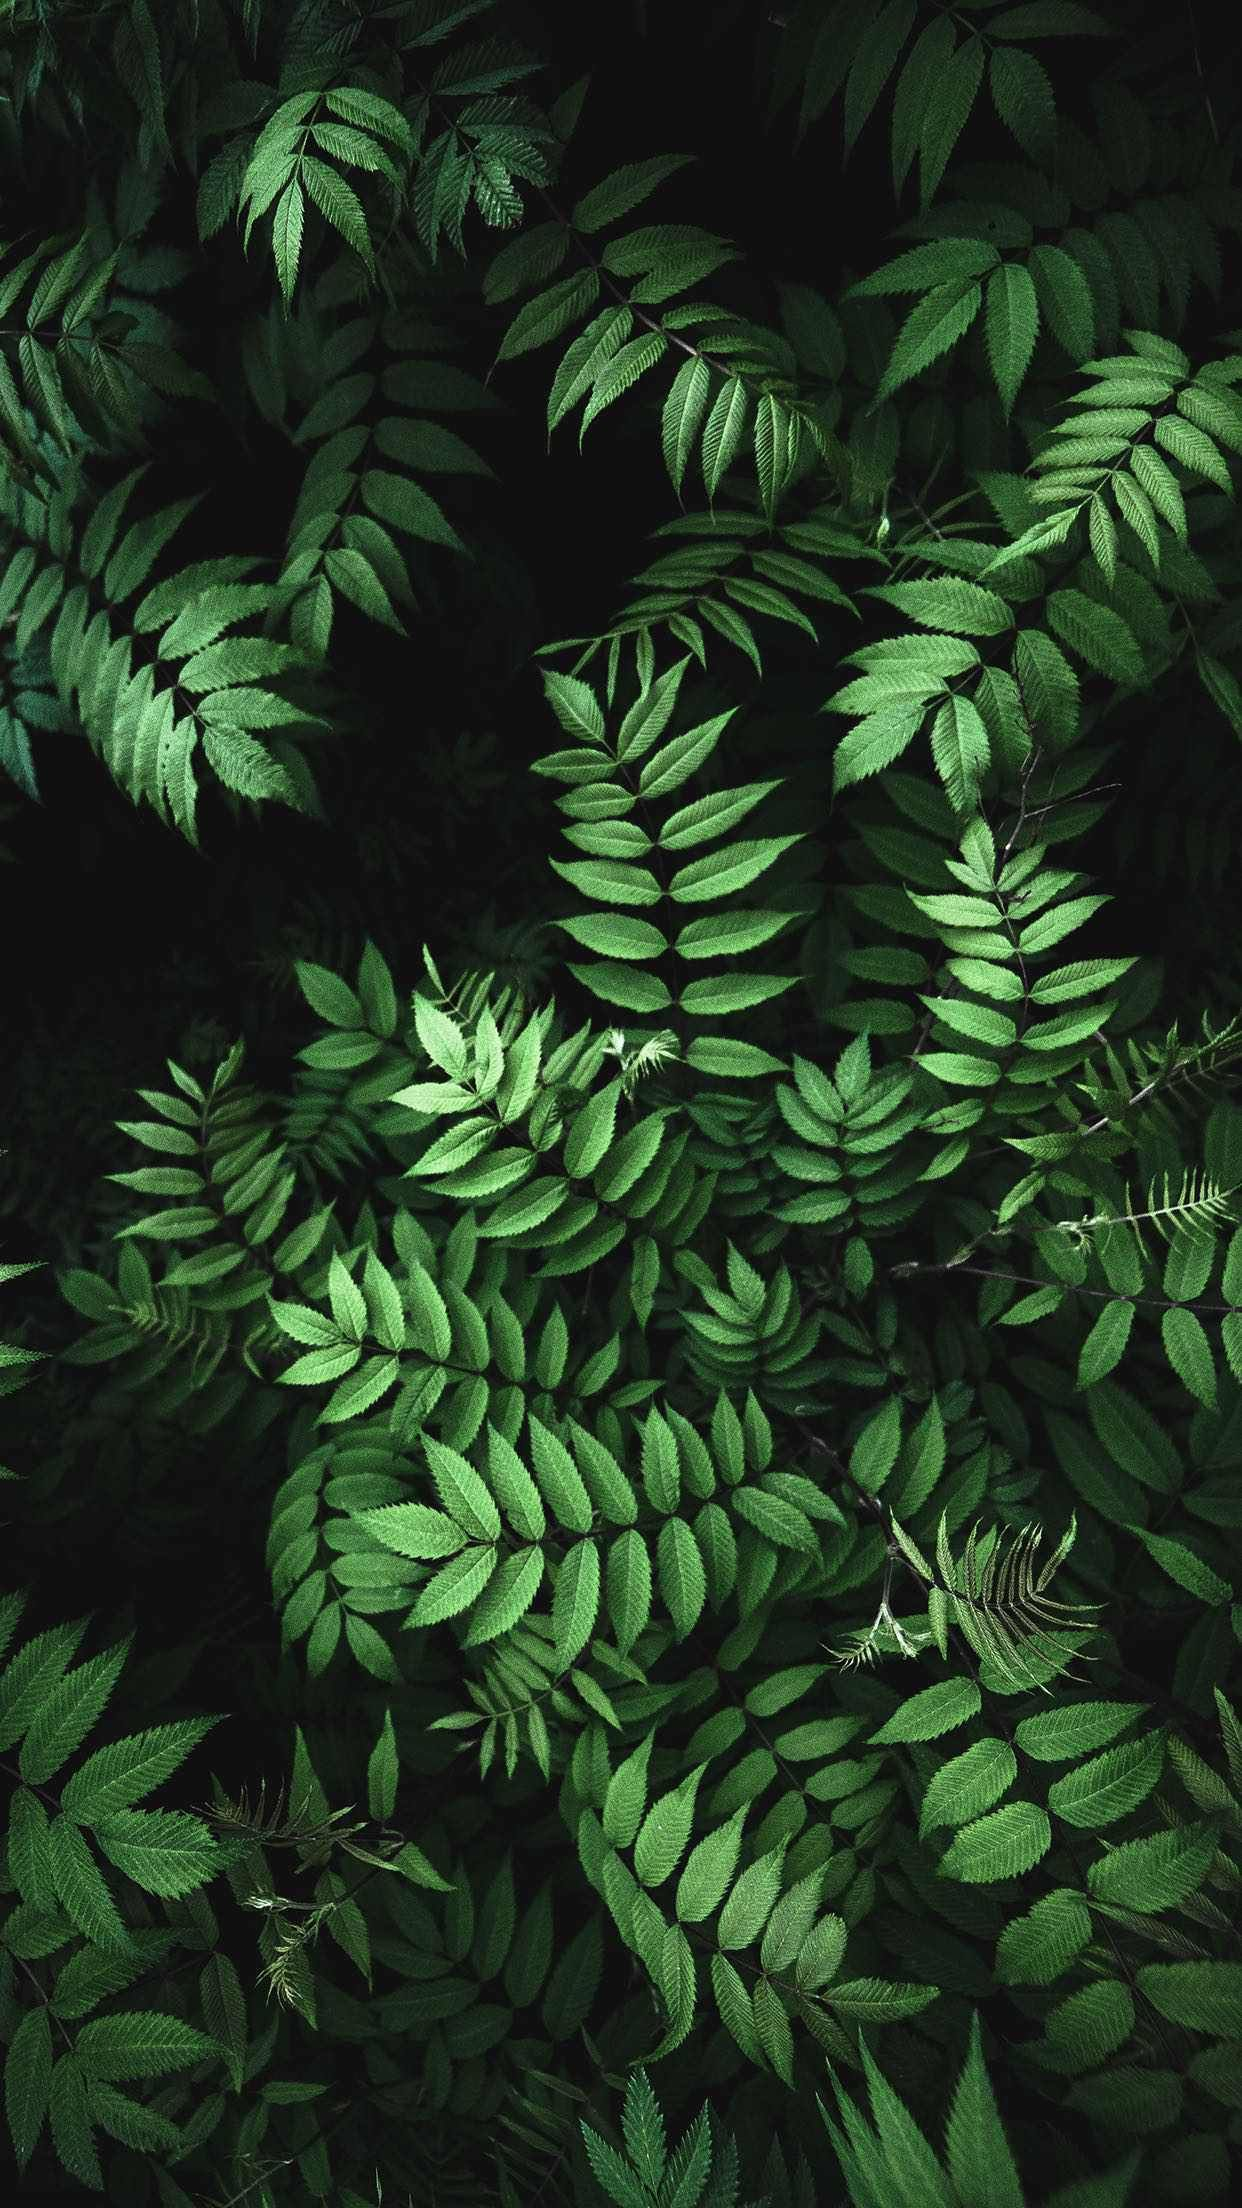 Iphone 8 Wallpaper In 2019 Green Leaf Wallpaper Fern